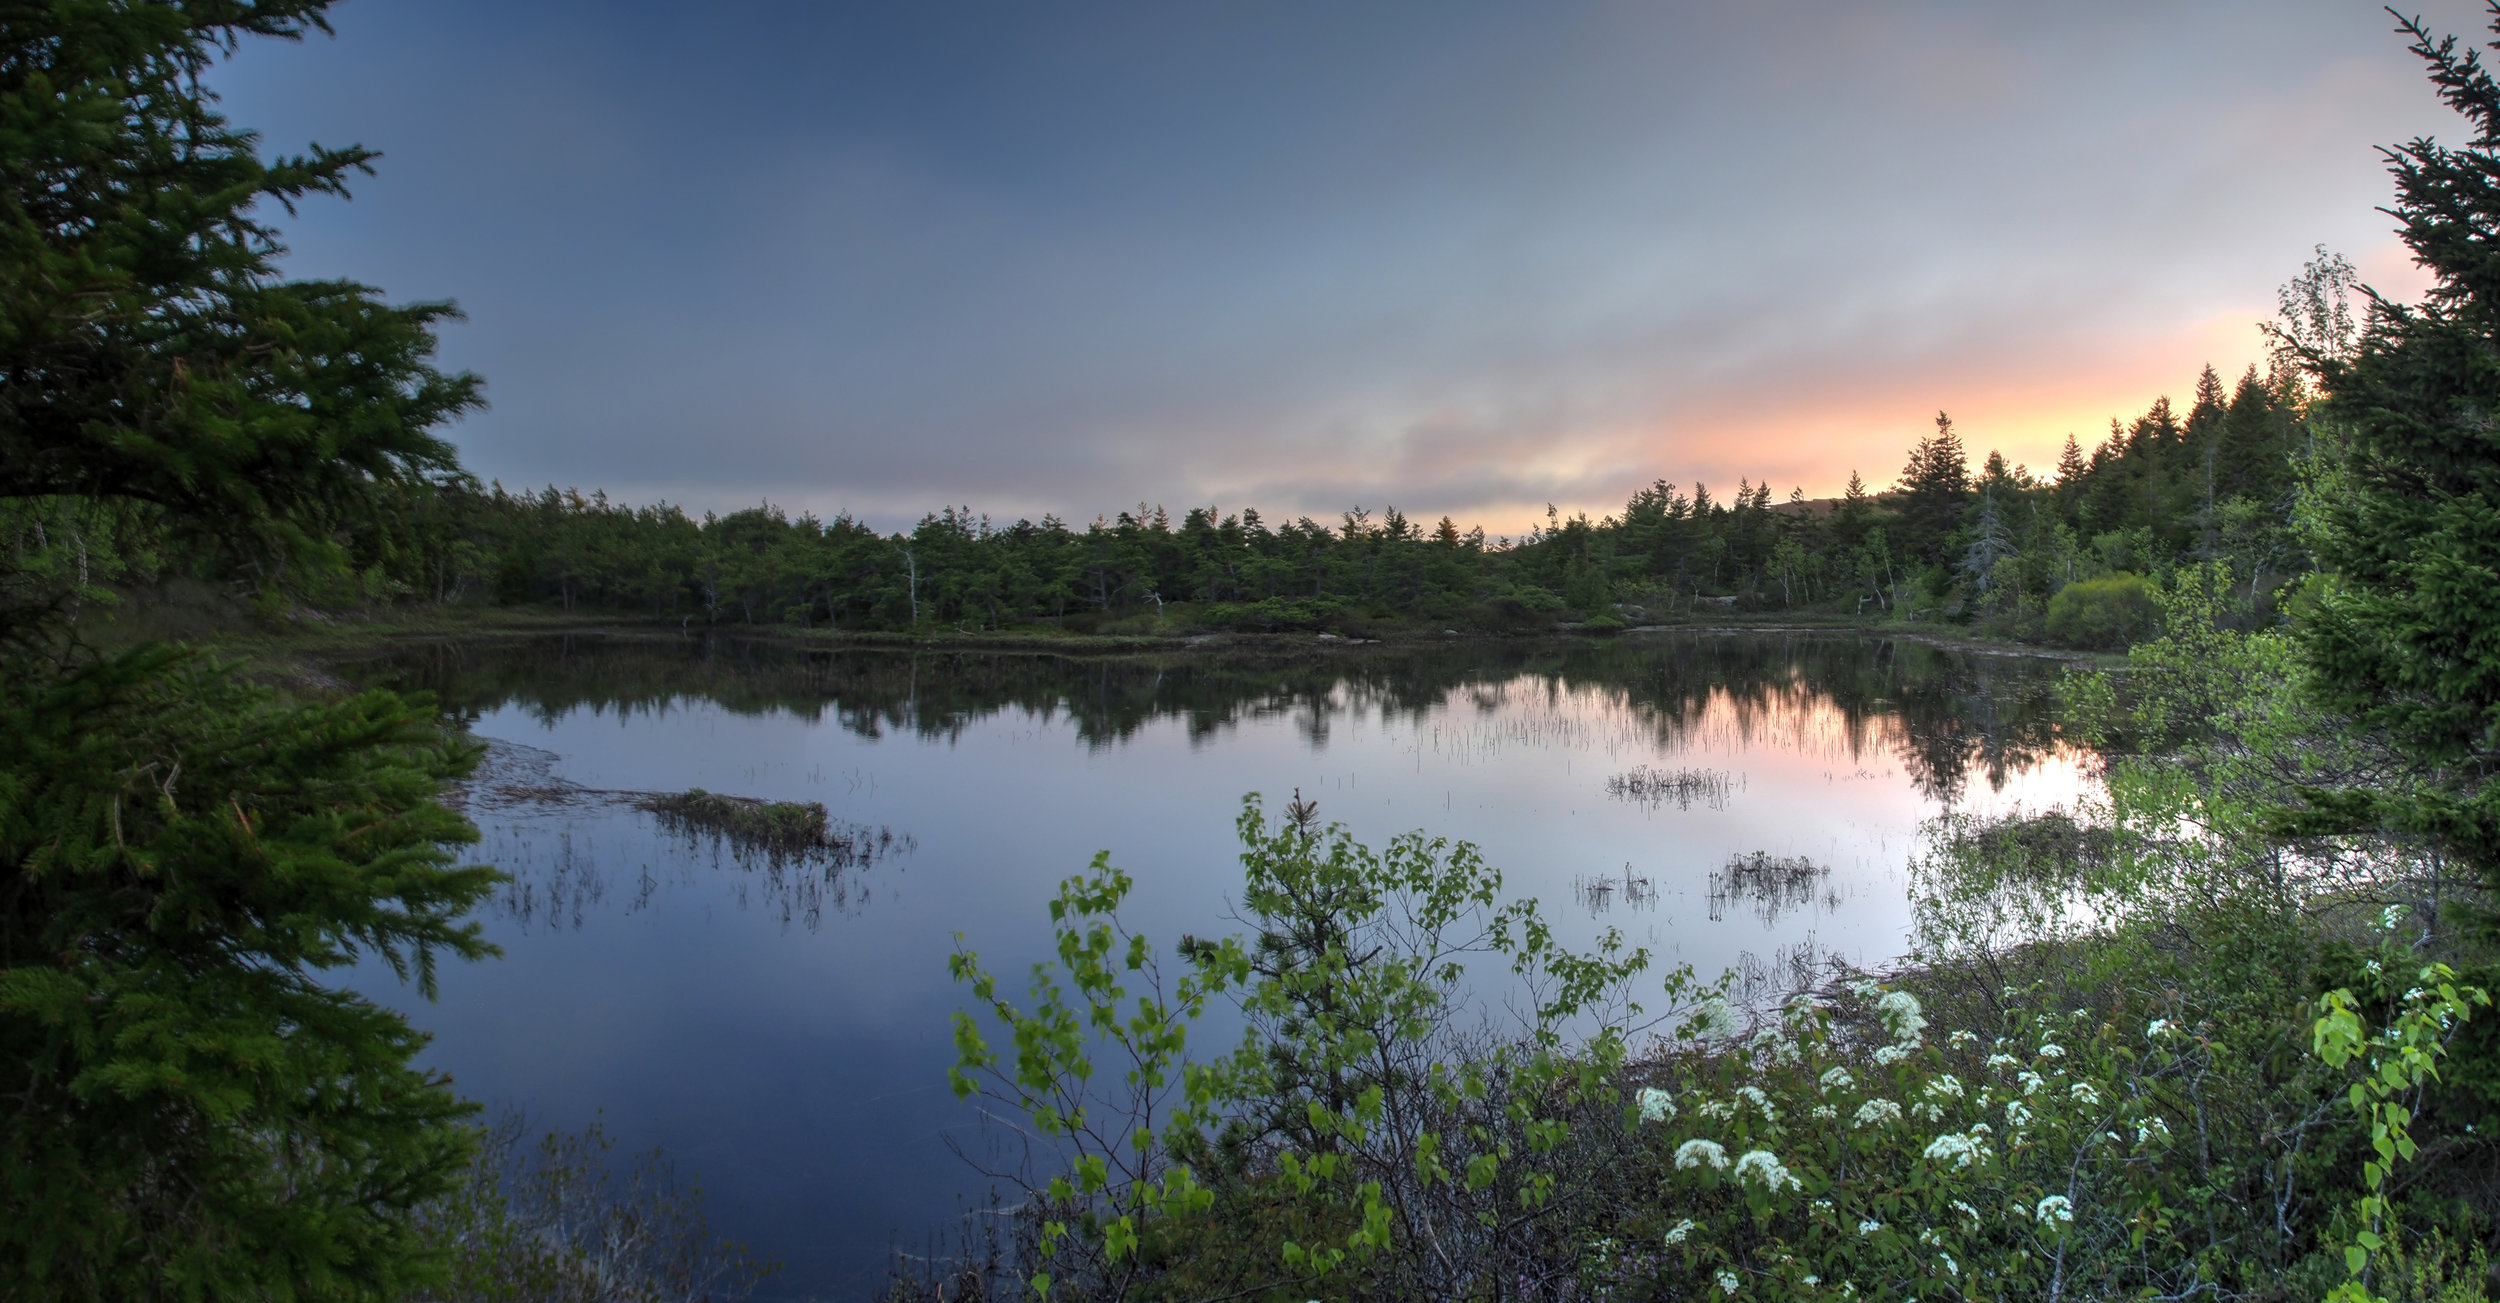 A mountain lake tucked away in Acadia National Park, Maine. Calm, relaxing sunset. You'd never know you were thousands of feet up, or that the ocean is just a mile or two away.